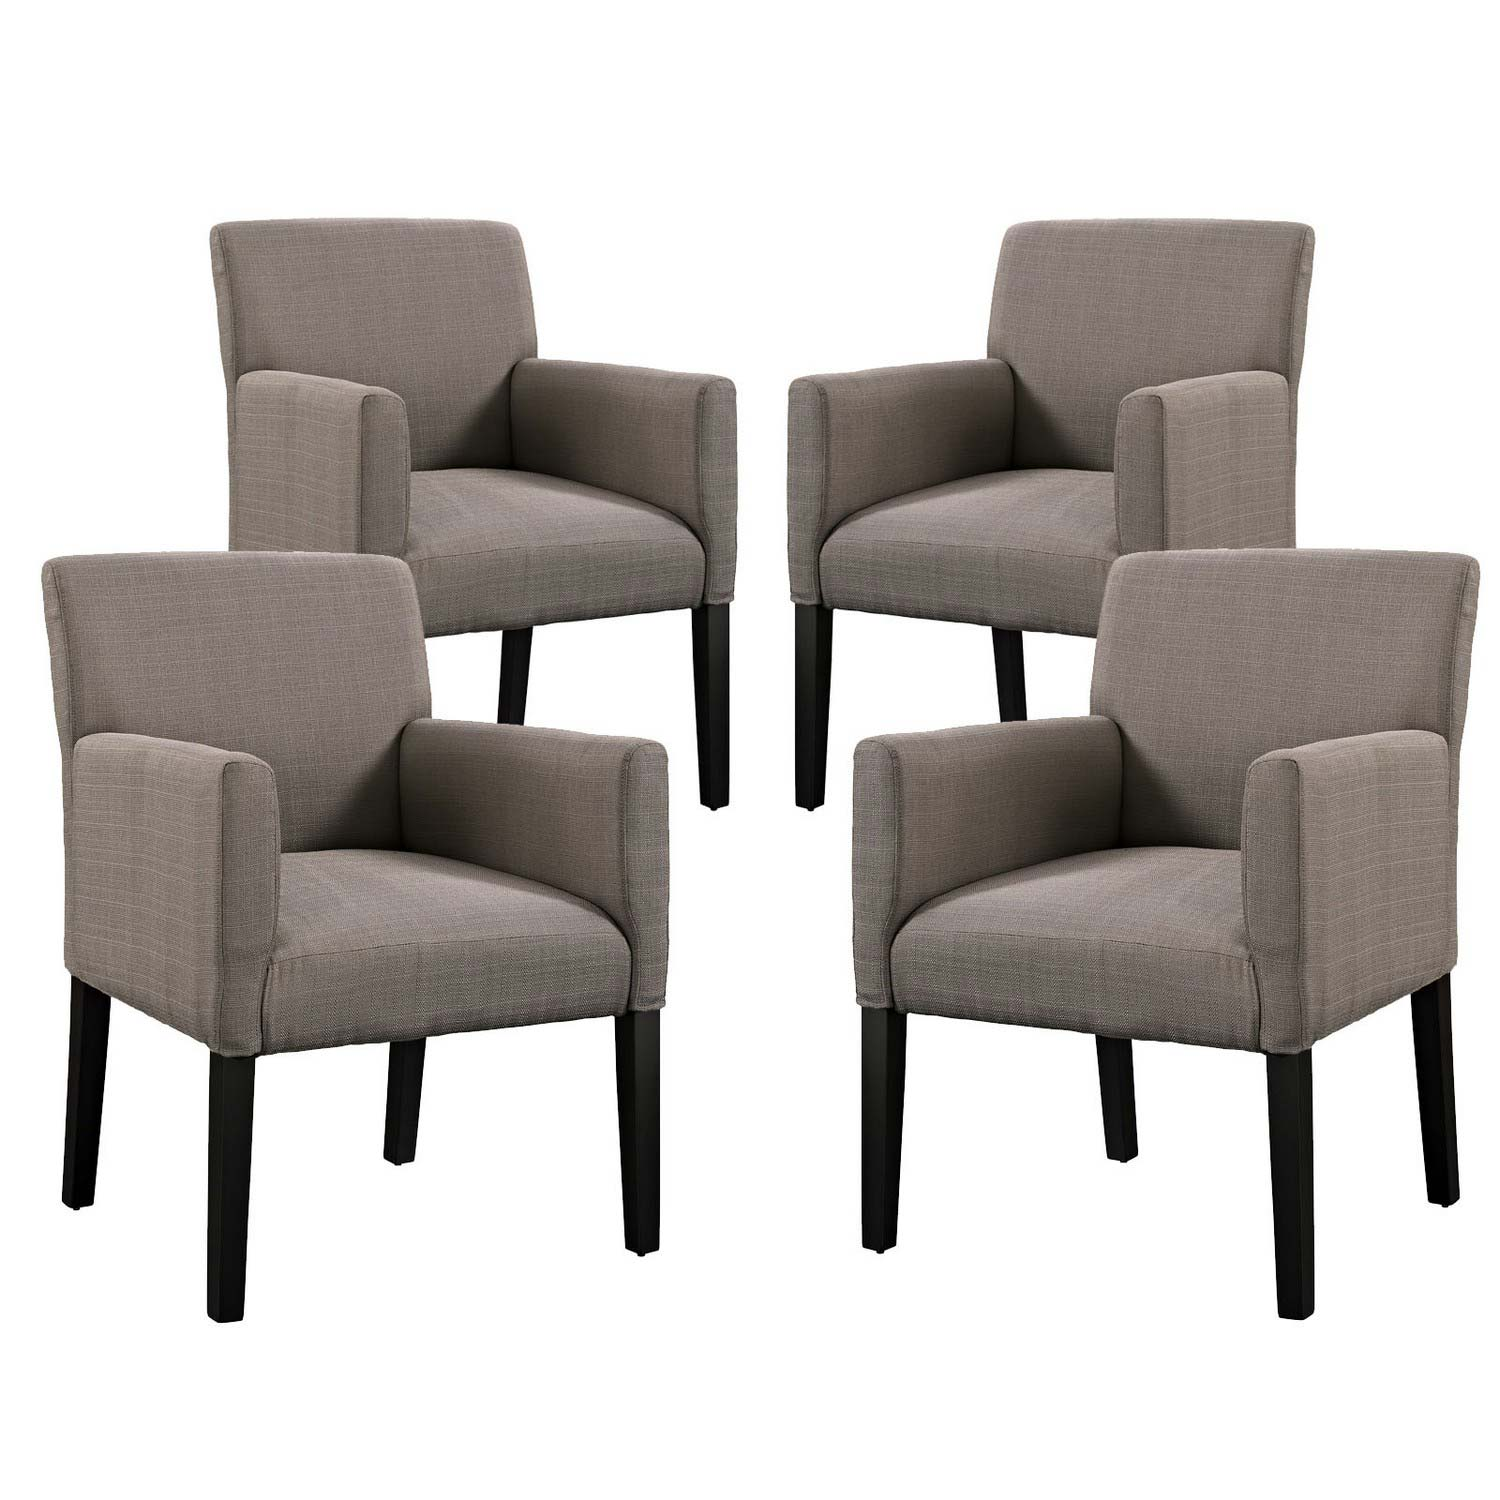 Modway Chloe Armchair Set of 4 - Gray